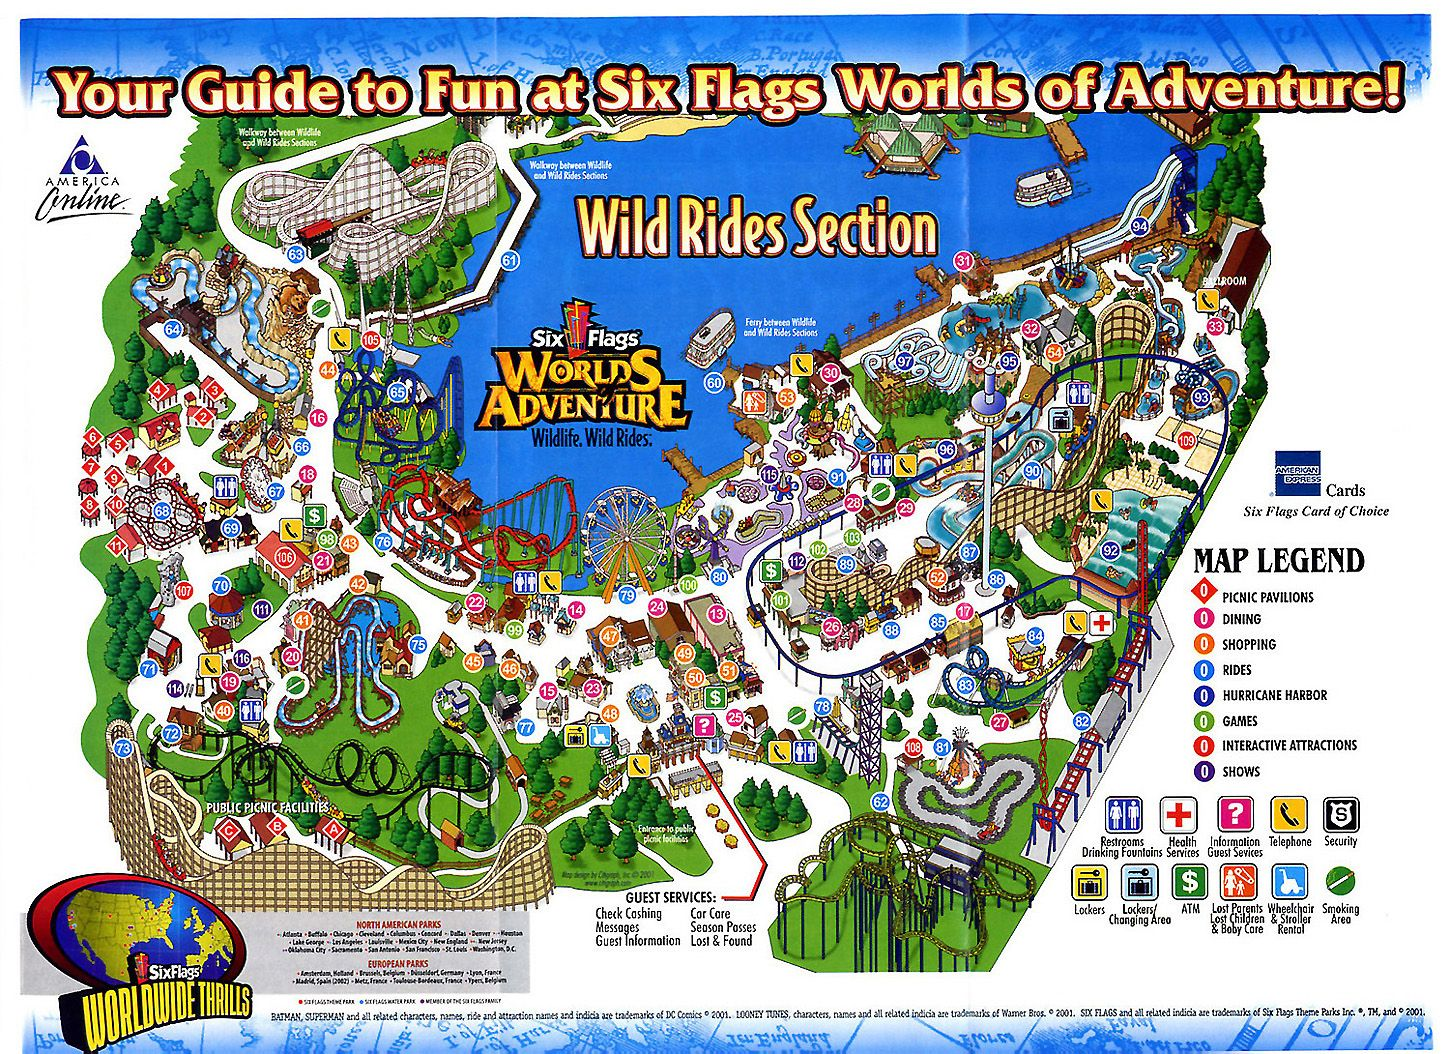 One Of The Amusement Parks We Went To Kristen Came With Us On - Map of amusement parks in the us